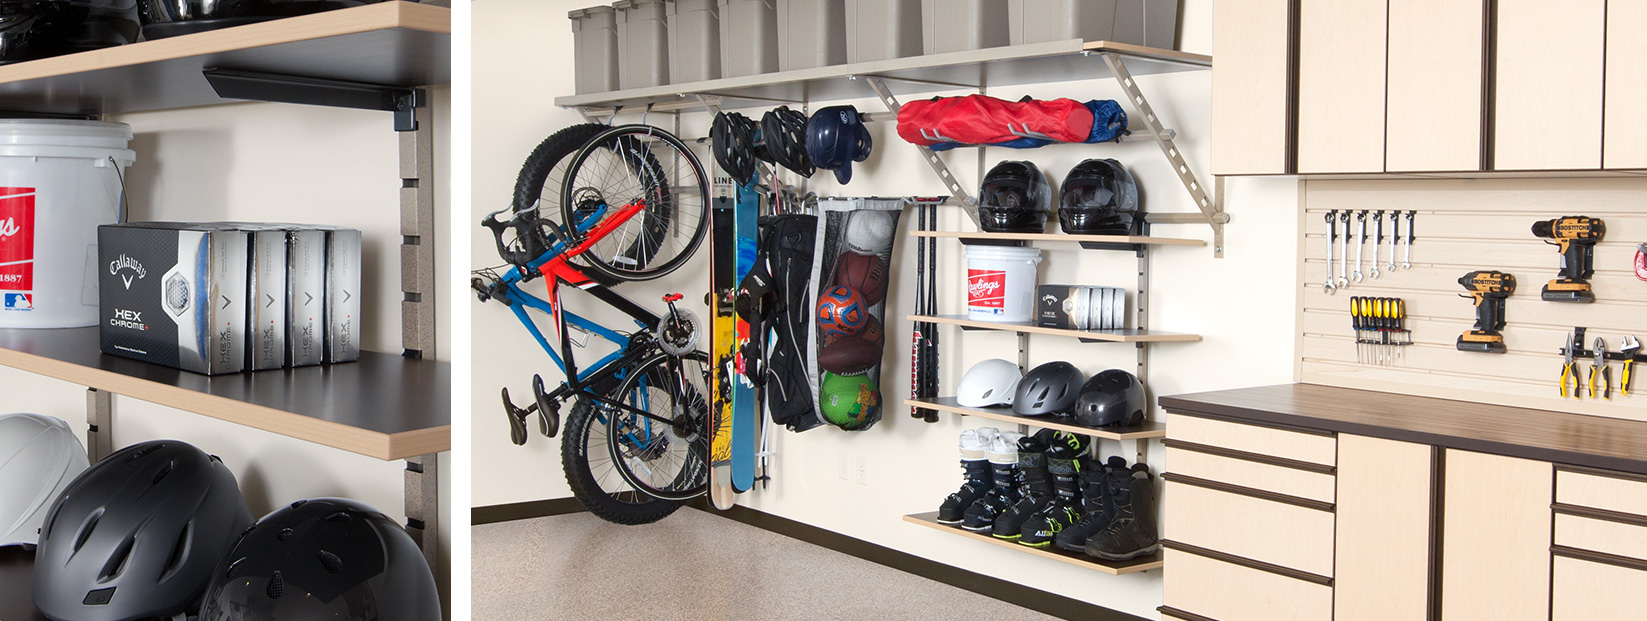 Garage Shelving System Philadelphia